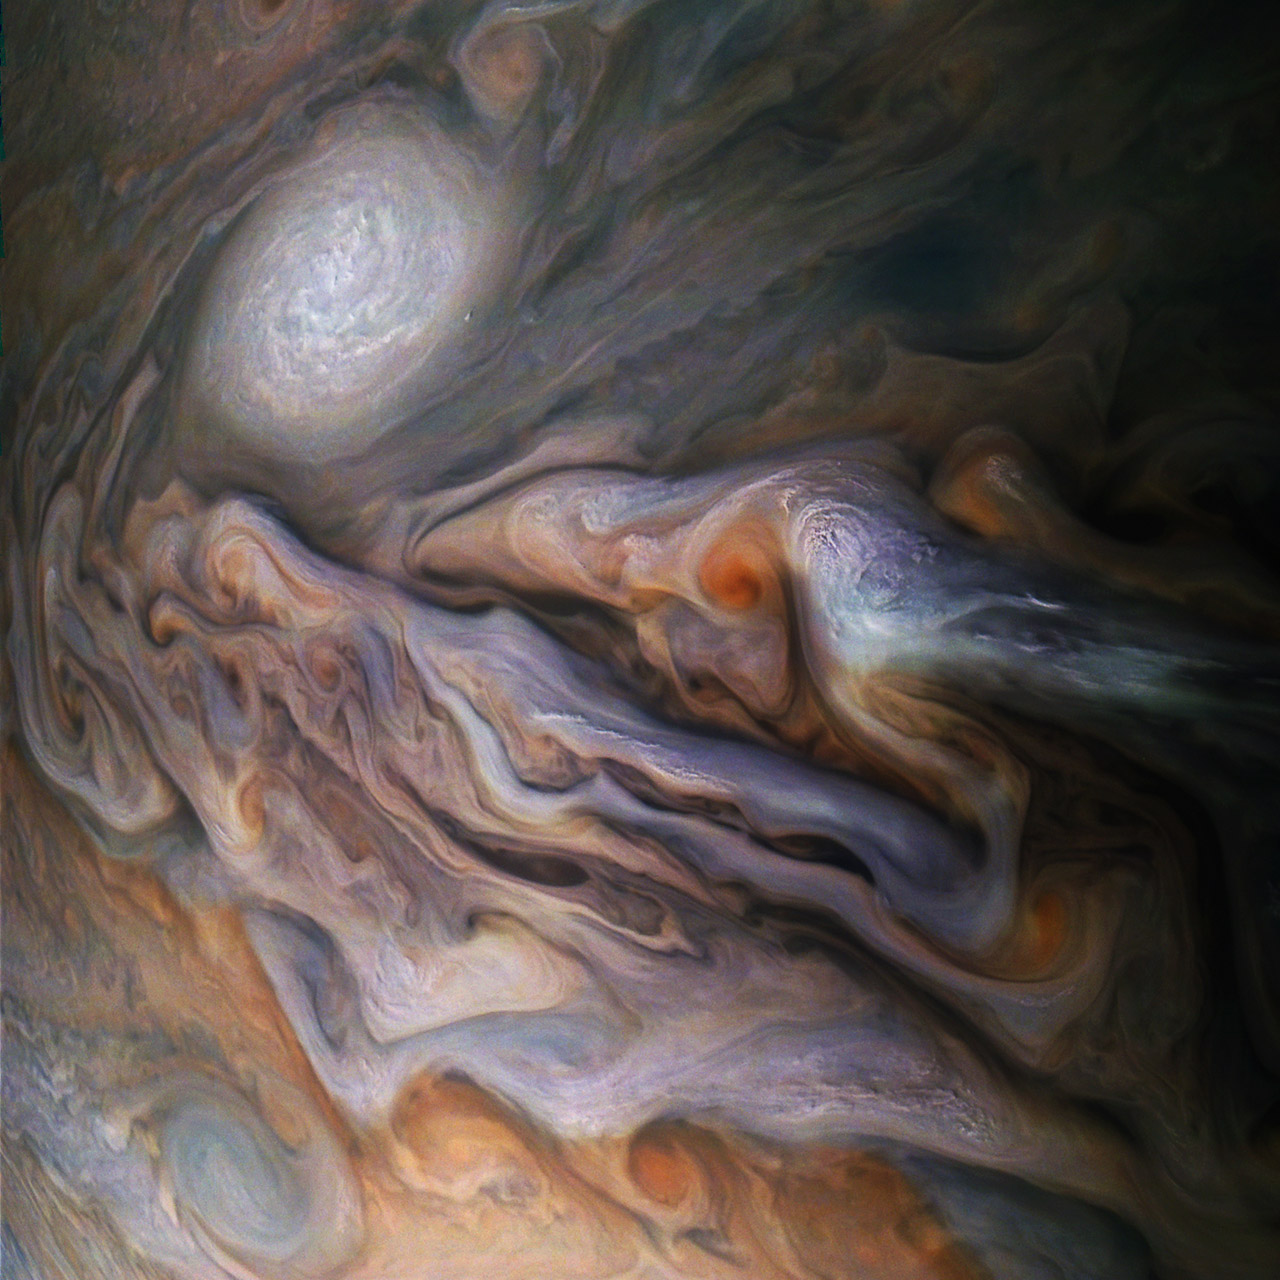 NASA Juno Spacecraft Jupiter White Oval Storm